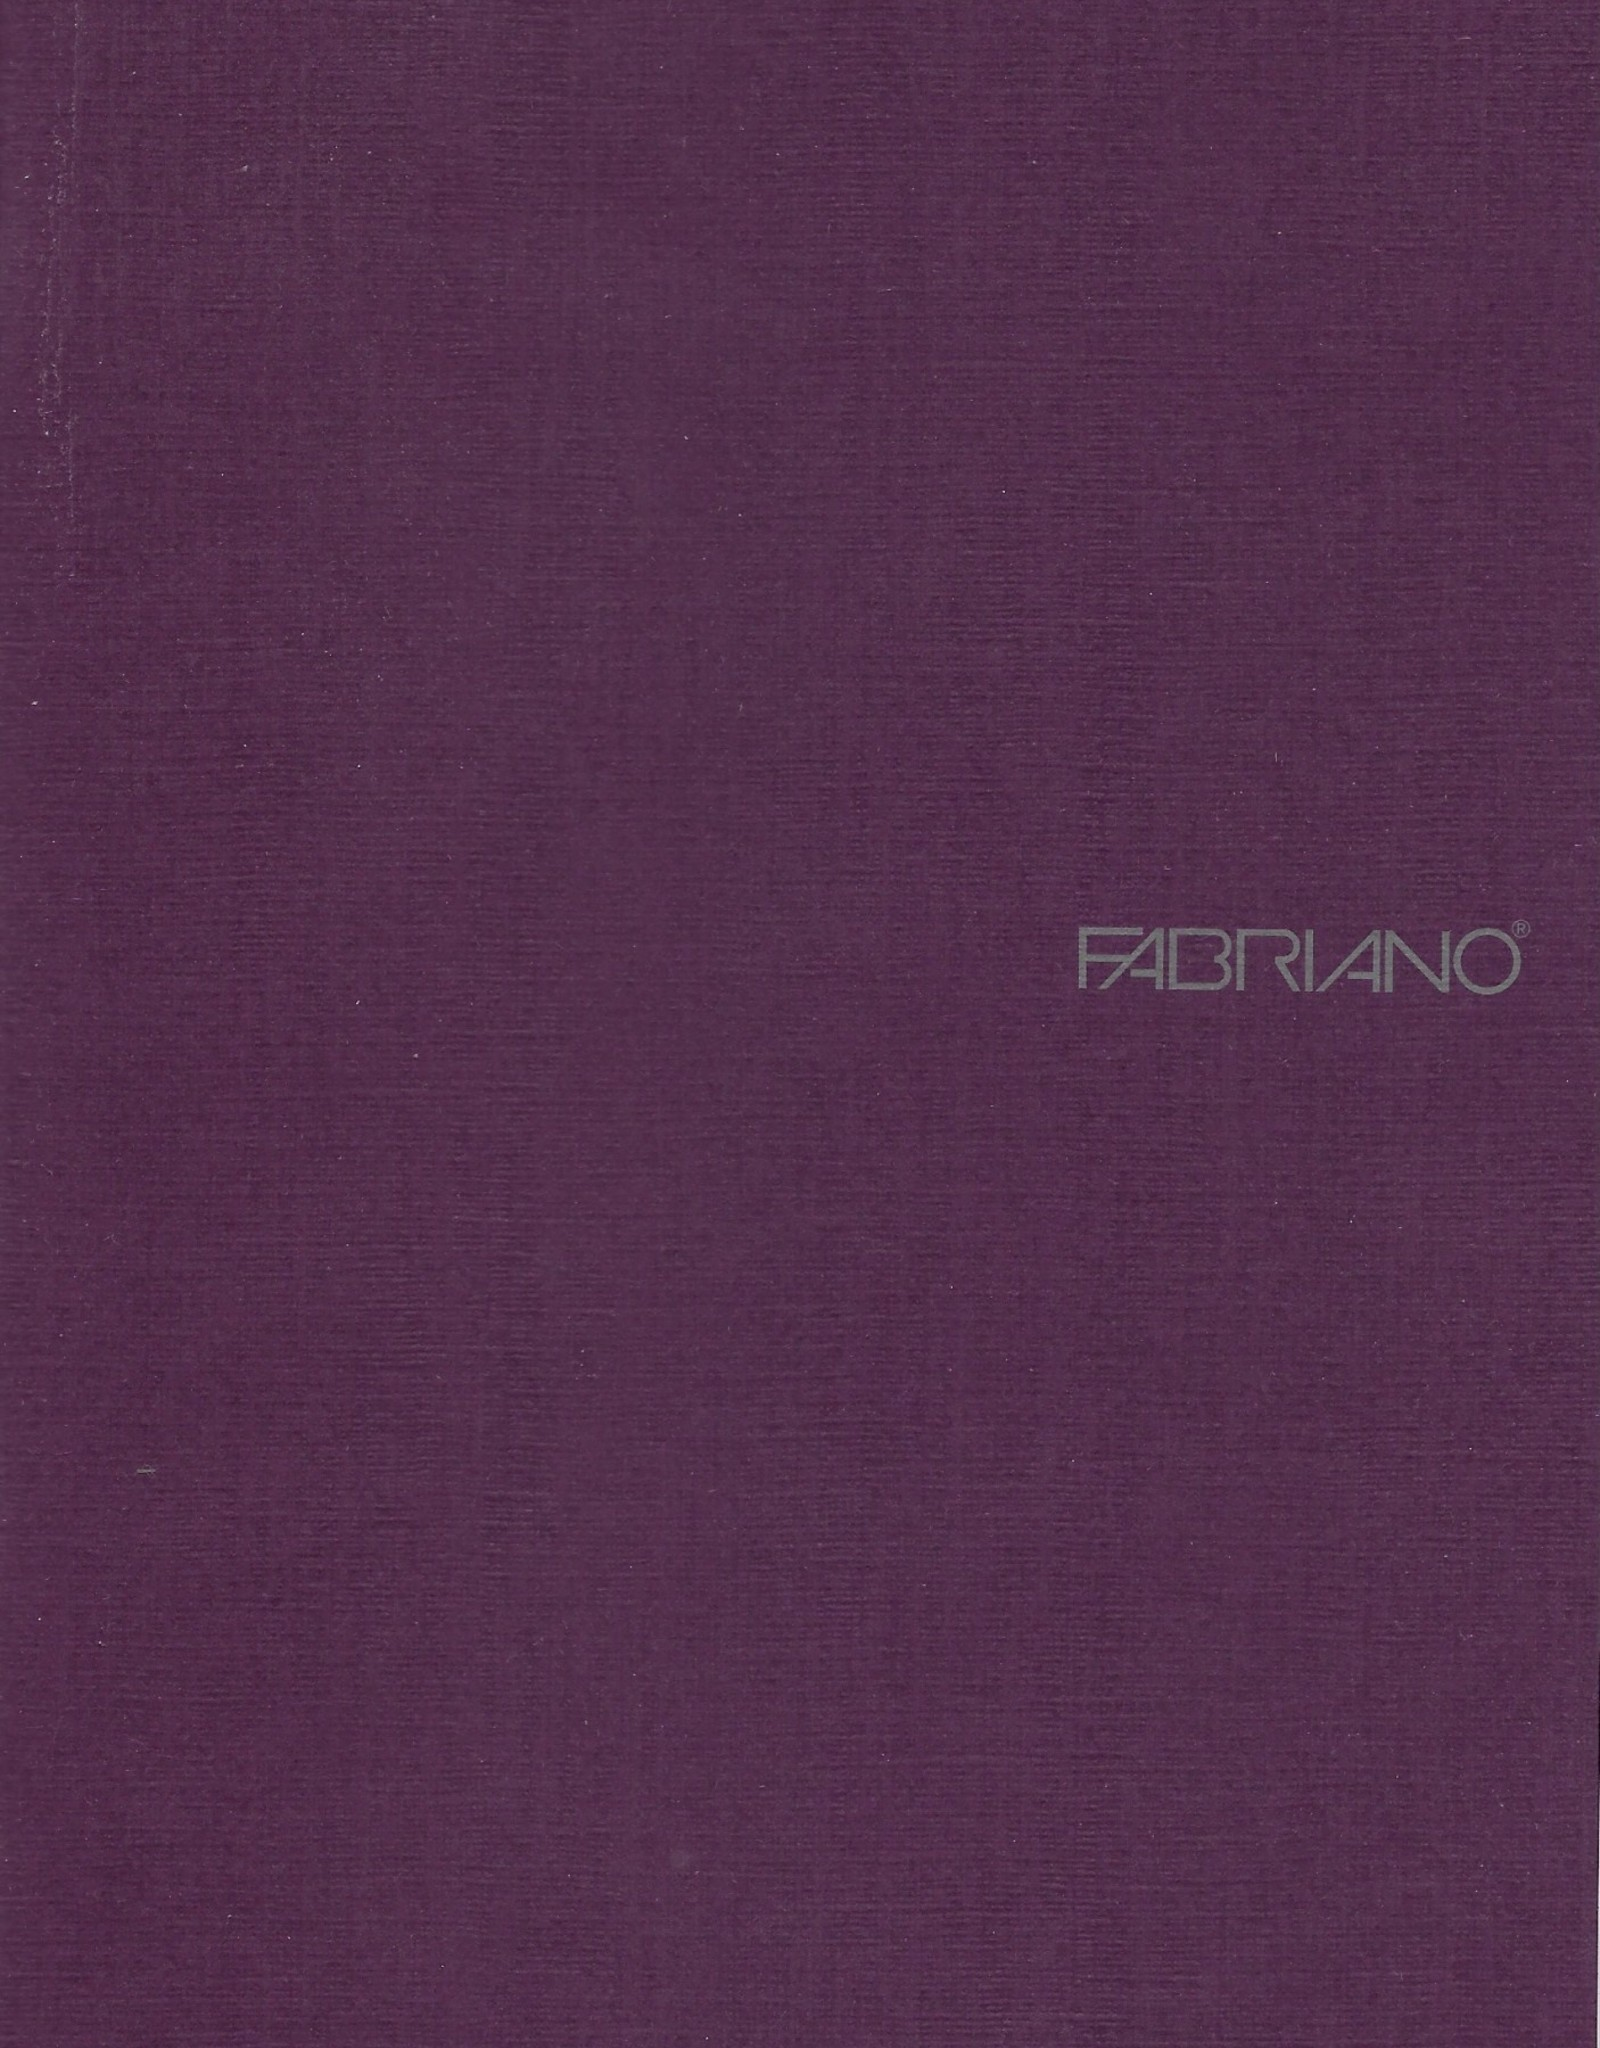 "Fabriano EcoQua Blank Notebook, Wine, 5.75"" x 8.25"" 40 Sheets"